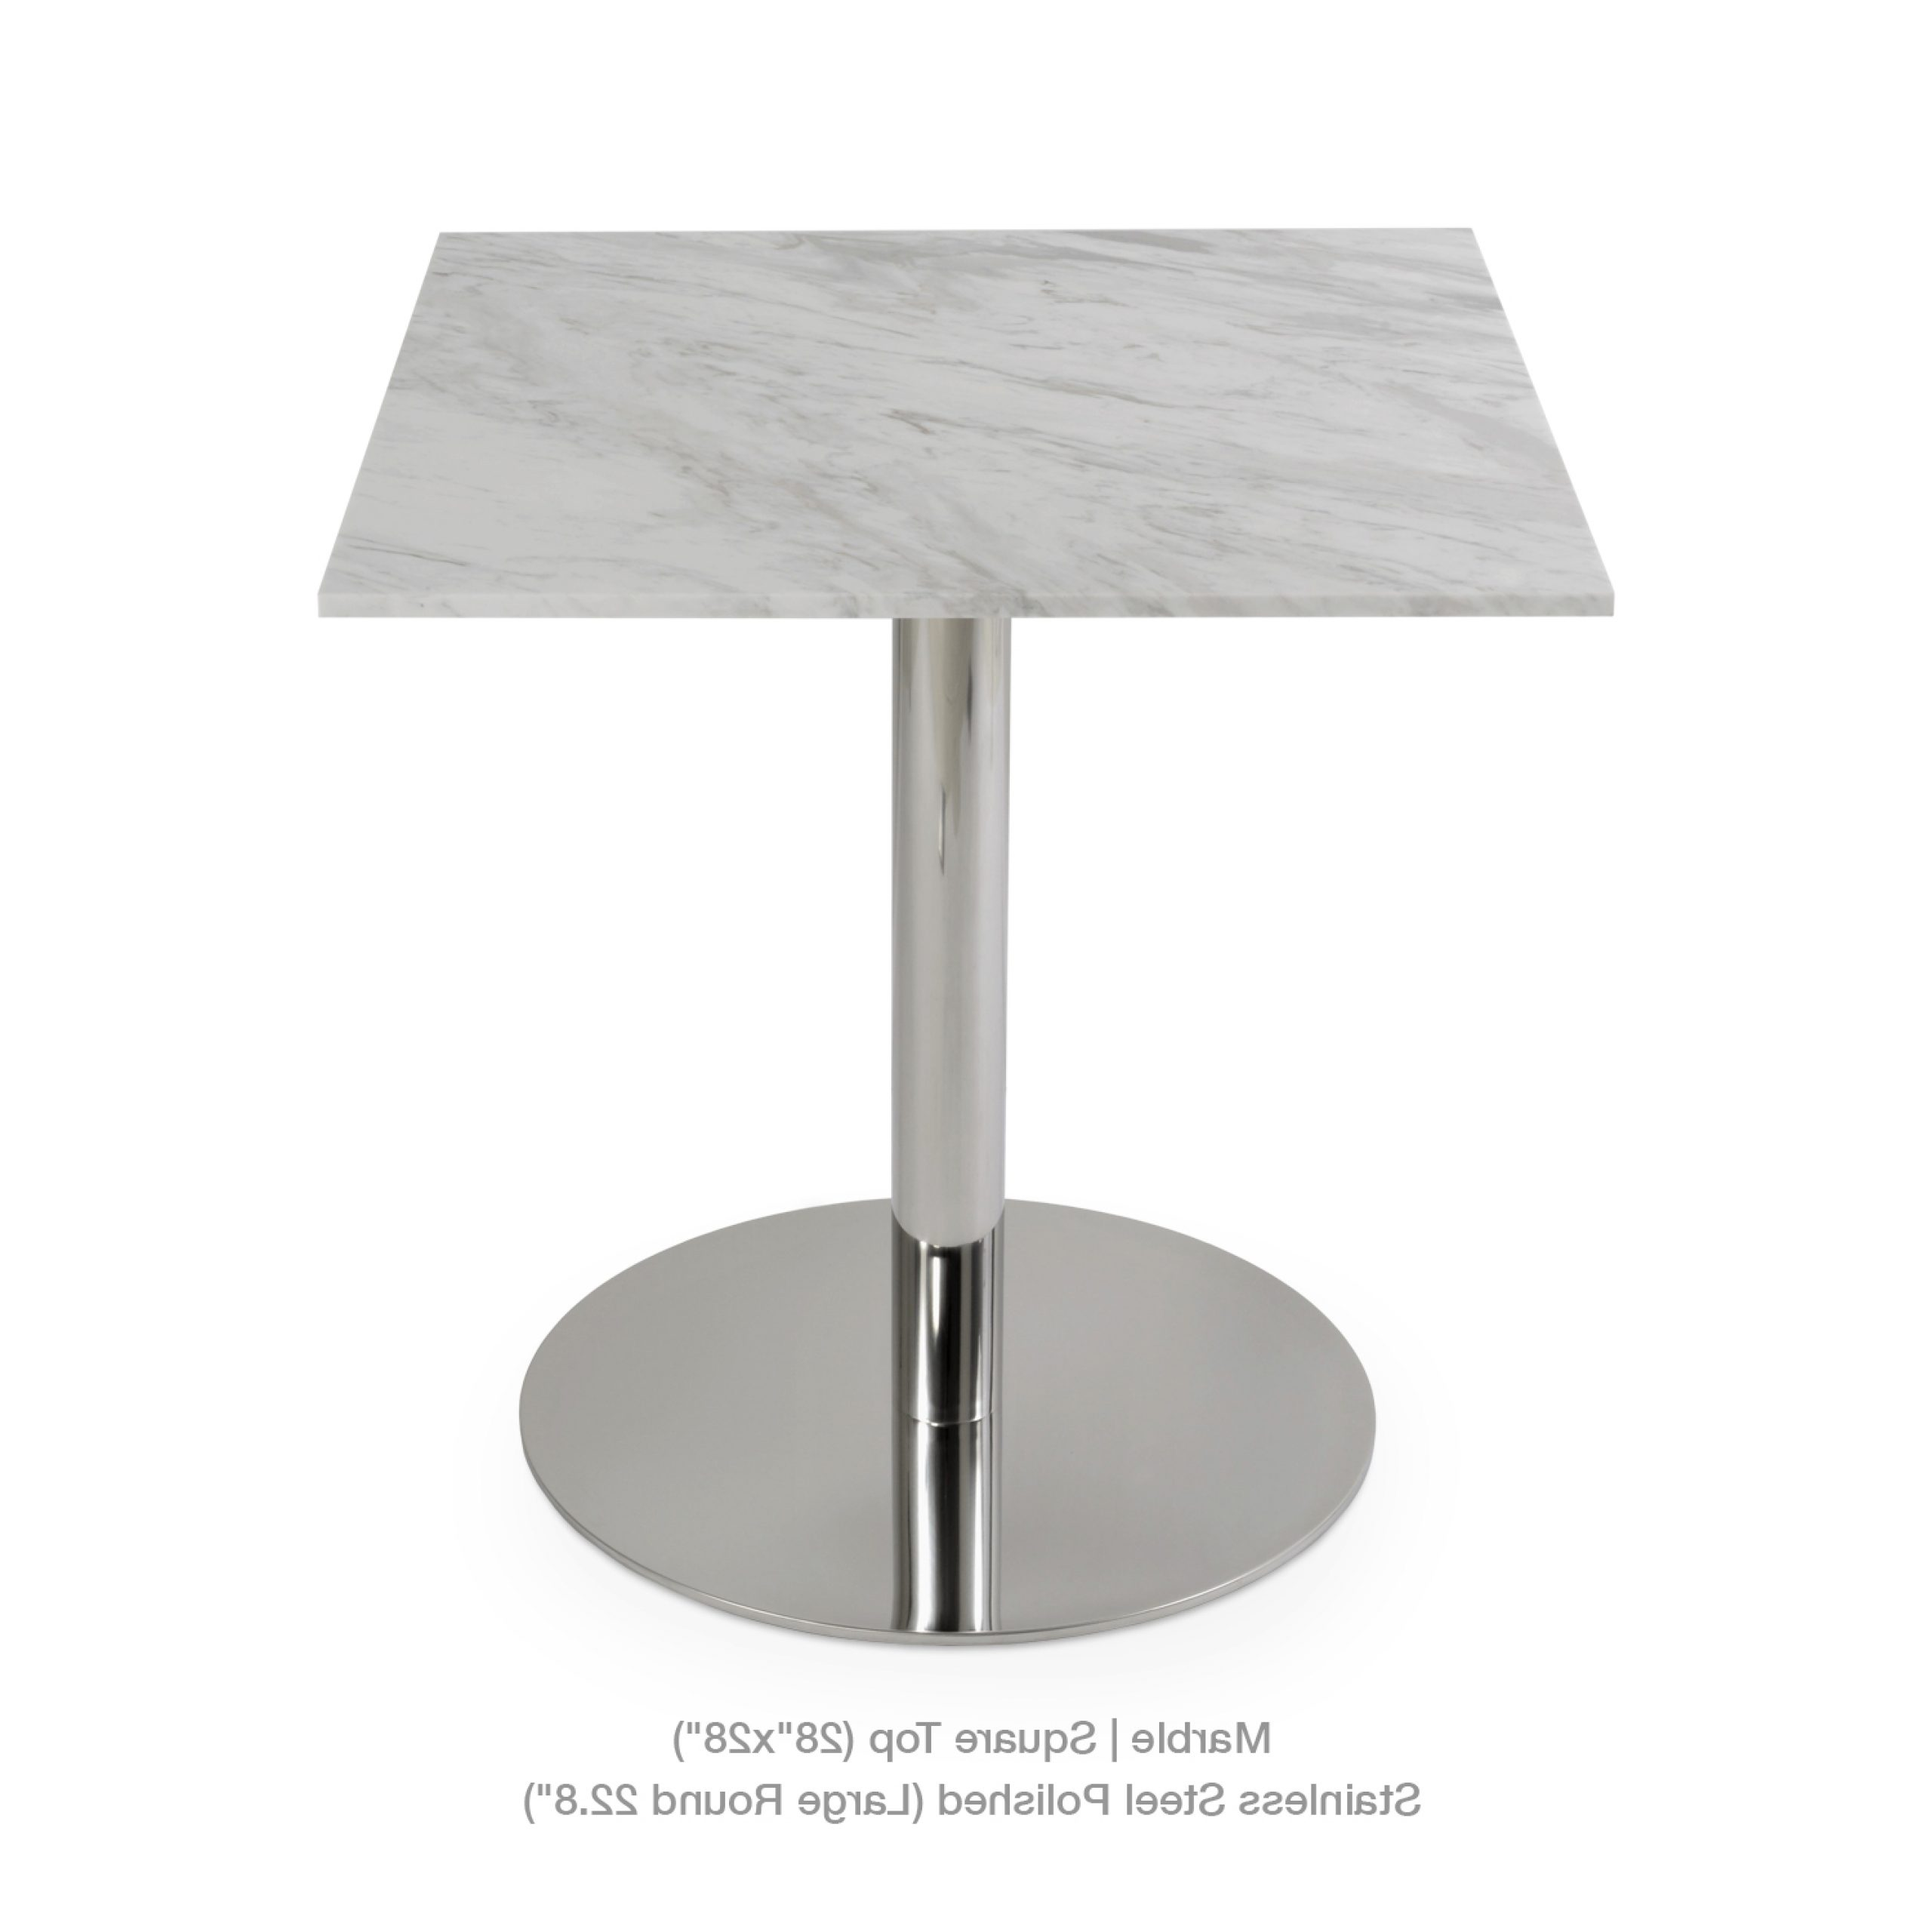 Sohoconcept For Long Dining Tables With Polished Black Stainless Steel Base (View 14 of 30)